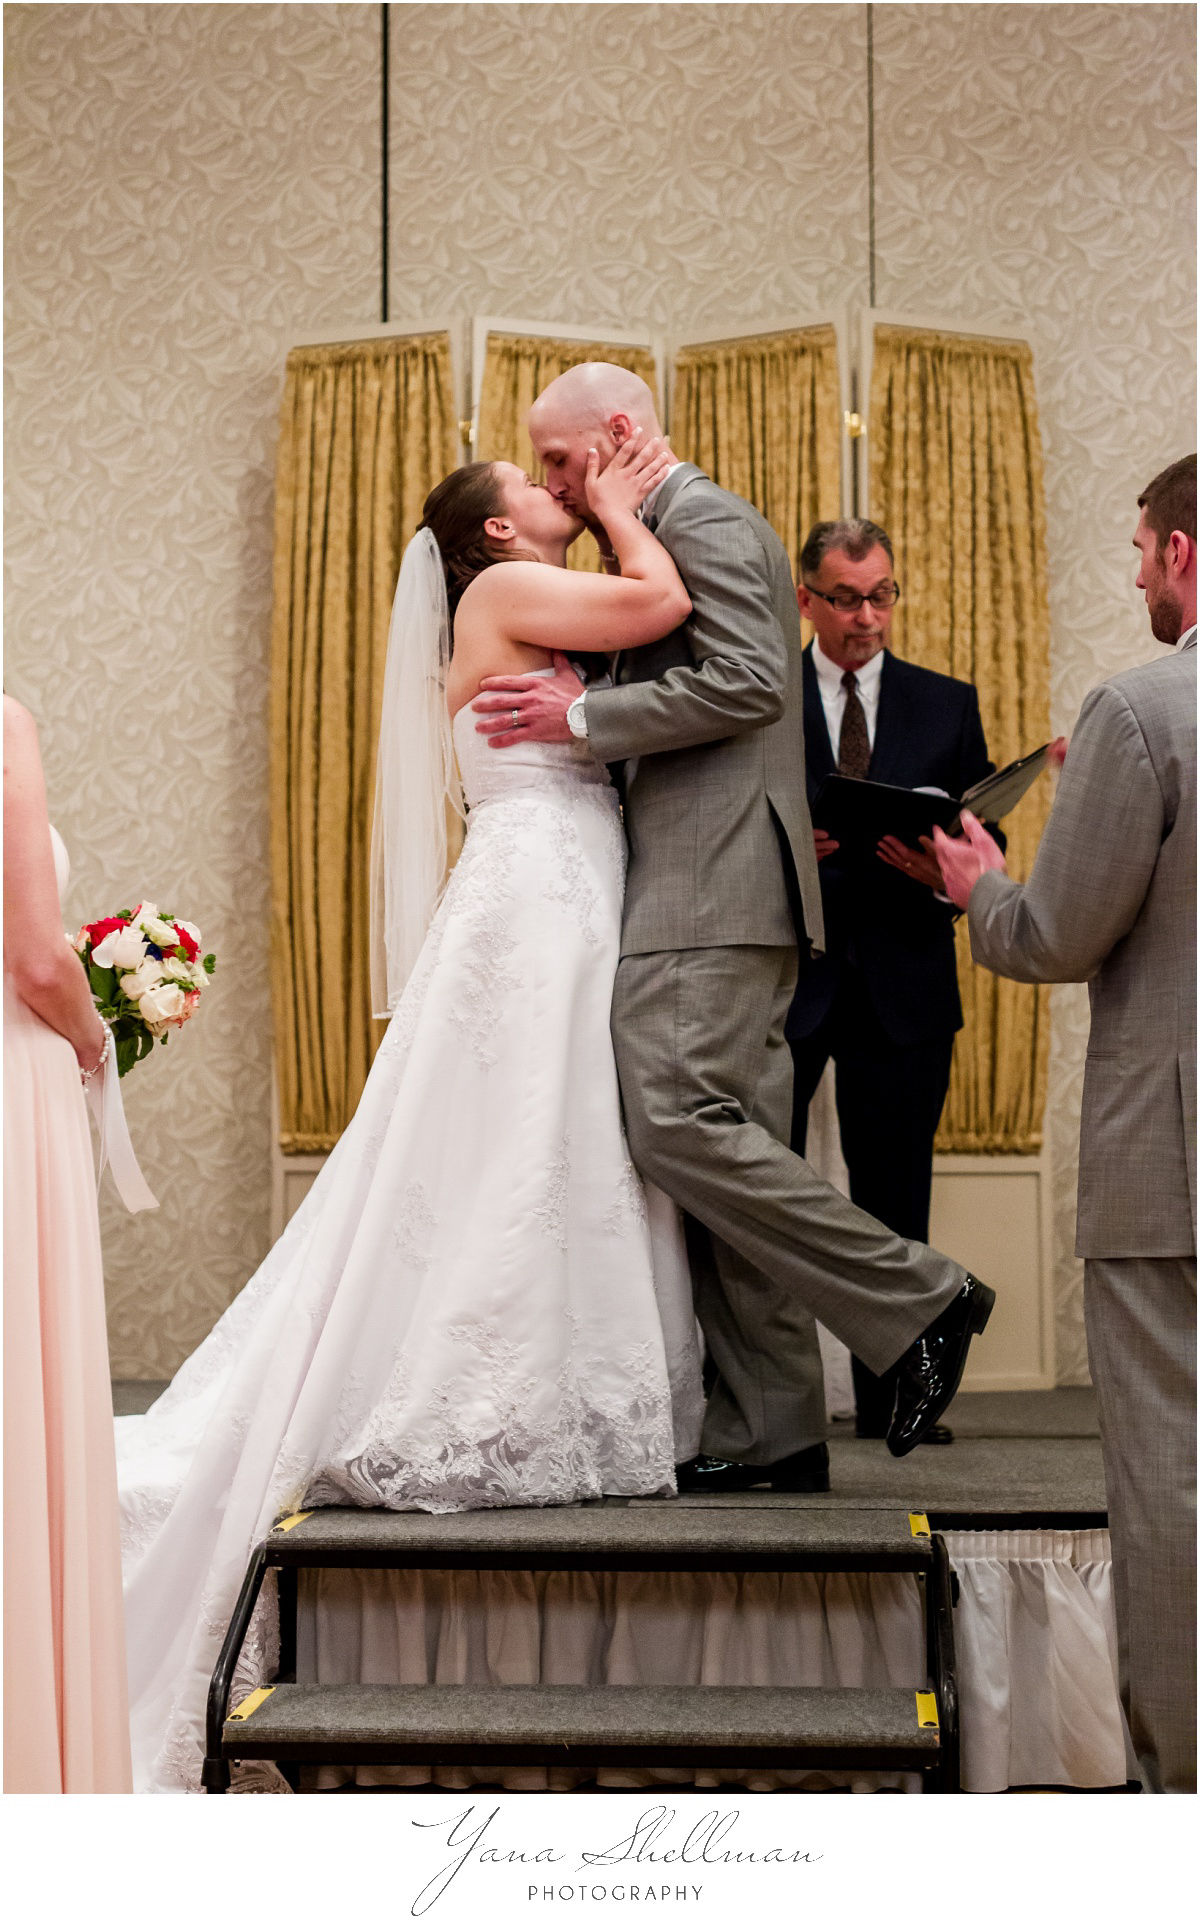 Radisson Hotel Philadelphia Wedding Photos by the best Mt Laurel Wedding Photographers - Rachel+Rick Wedding Photos